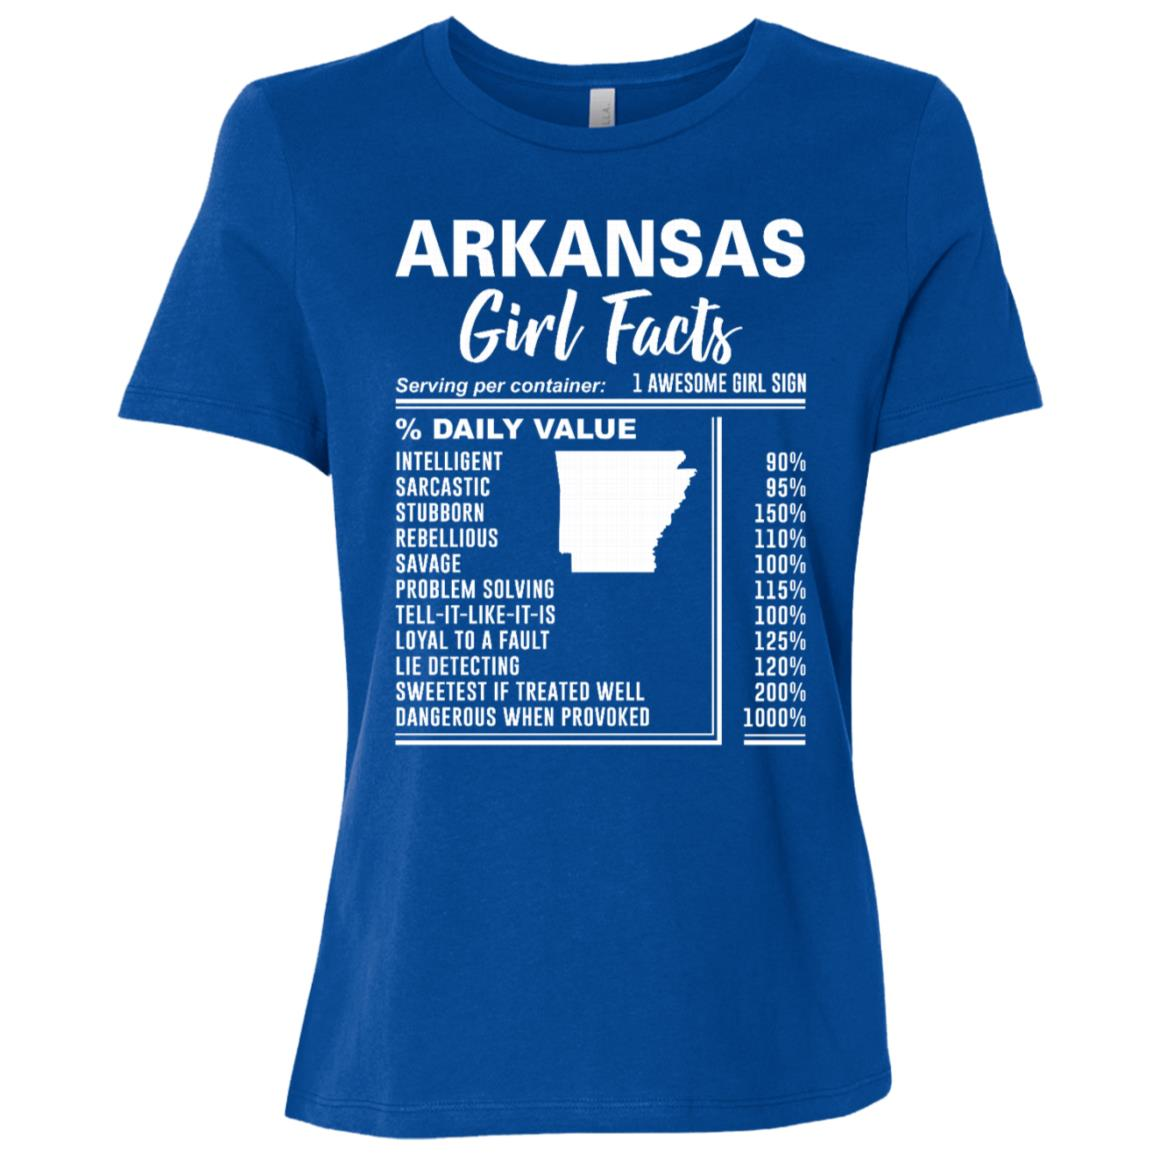 Born in Arkansas – Arkansas Girl Facts Women Short Sleeve T-Shirt